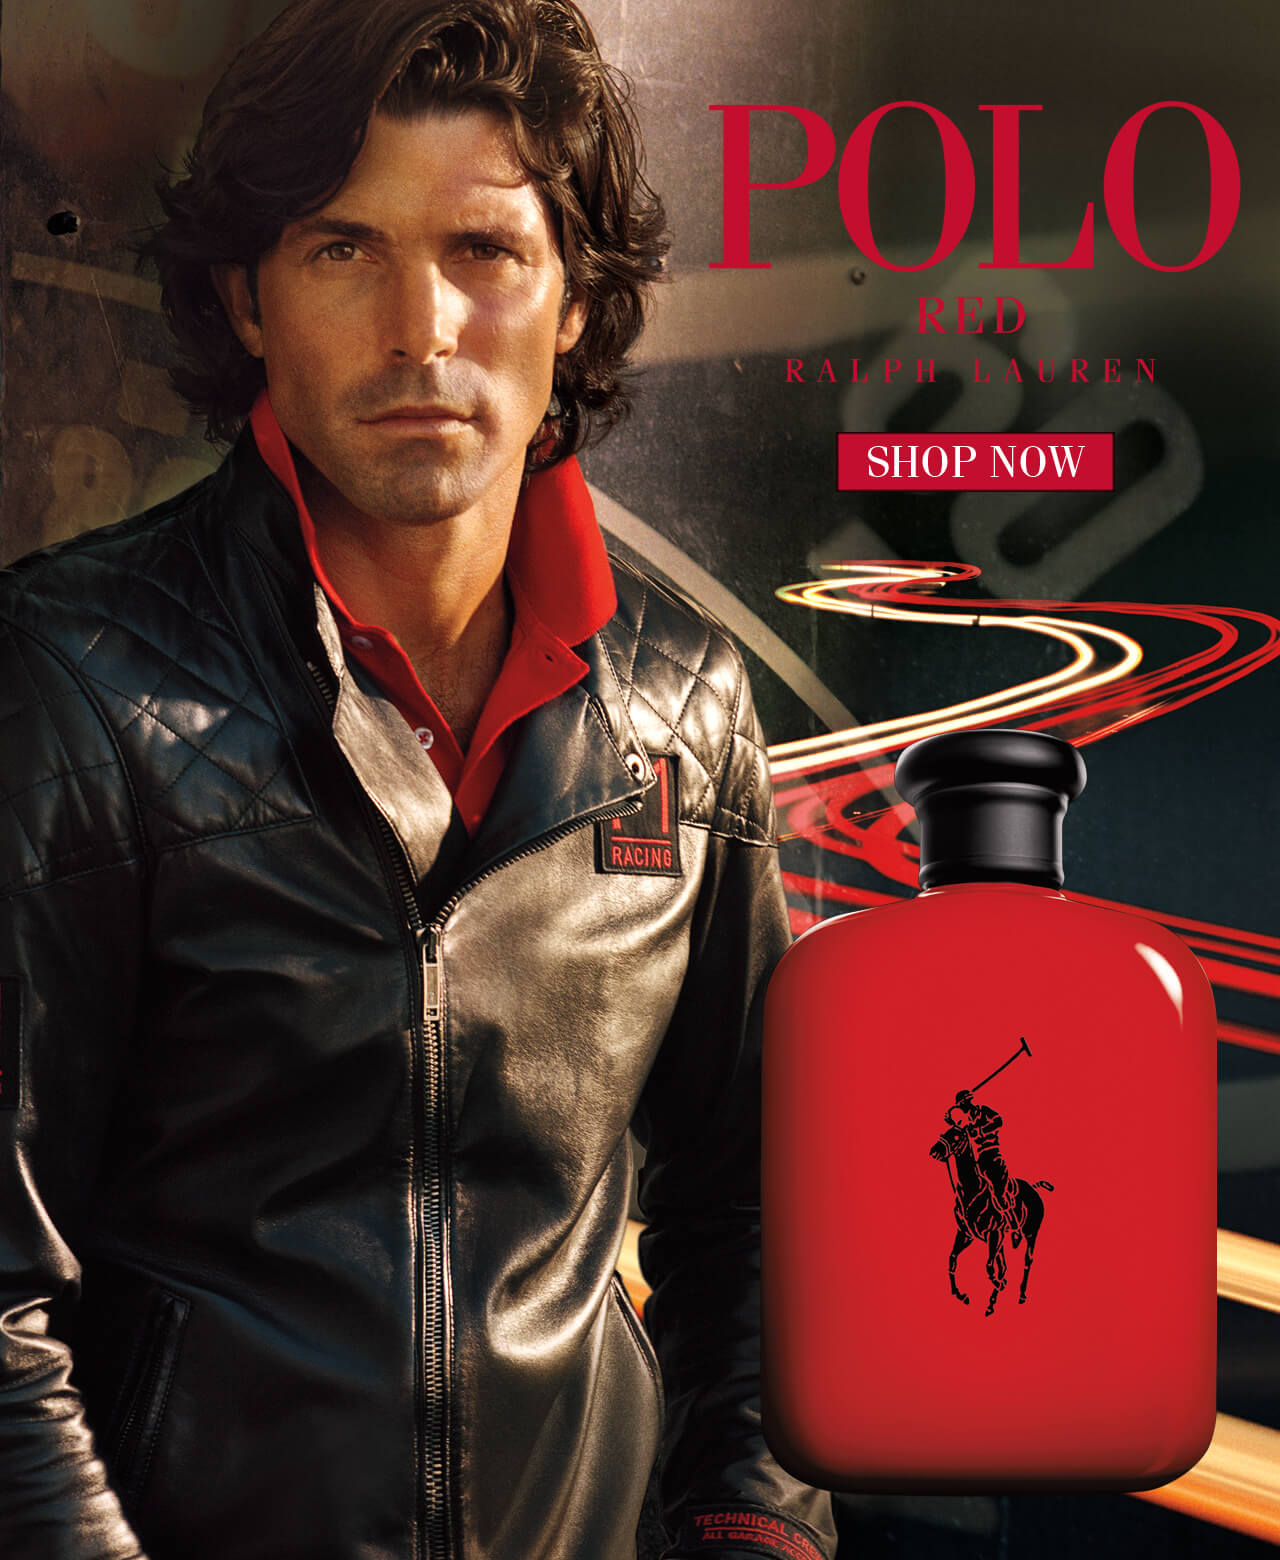 Polo Red Ralph Lauren